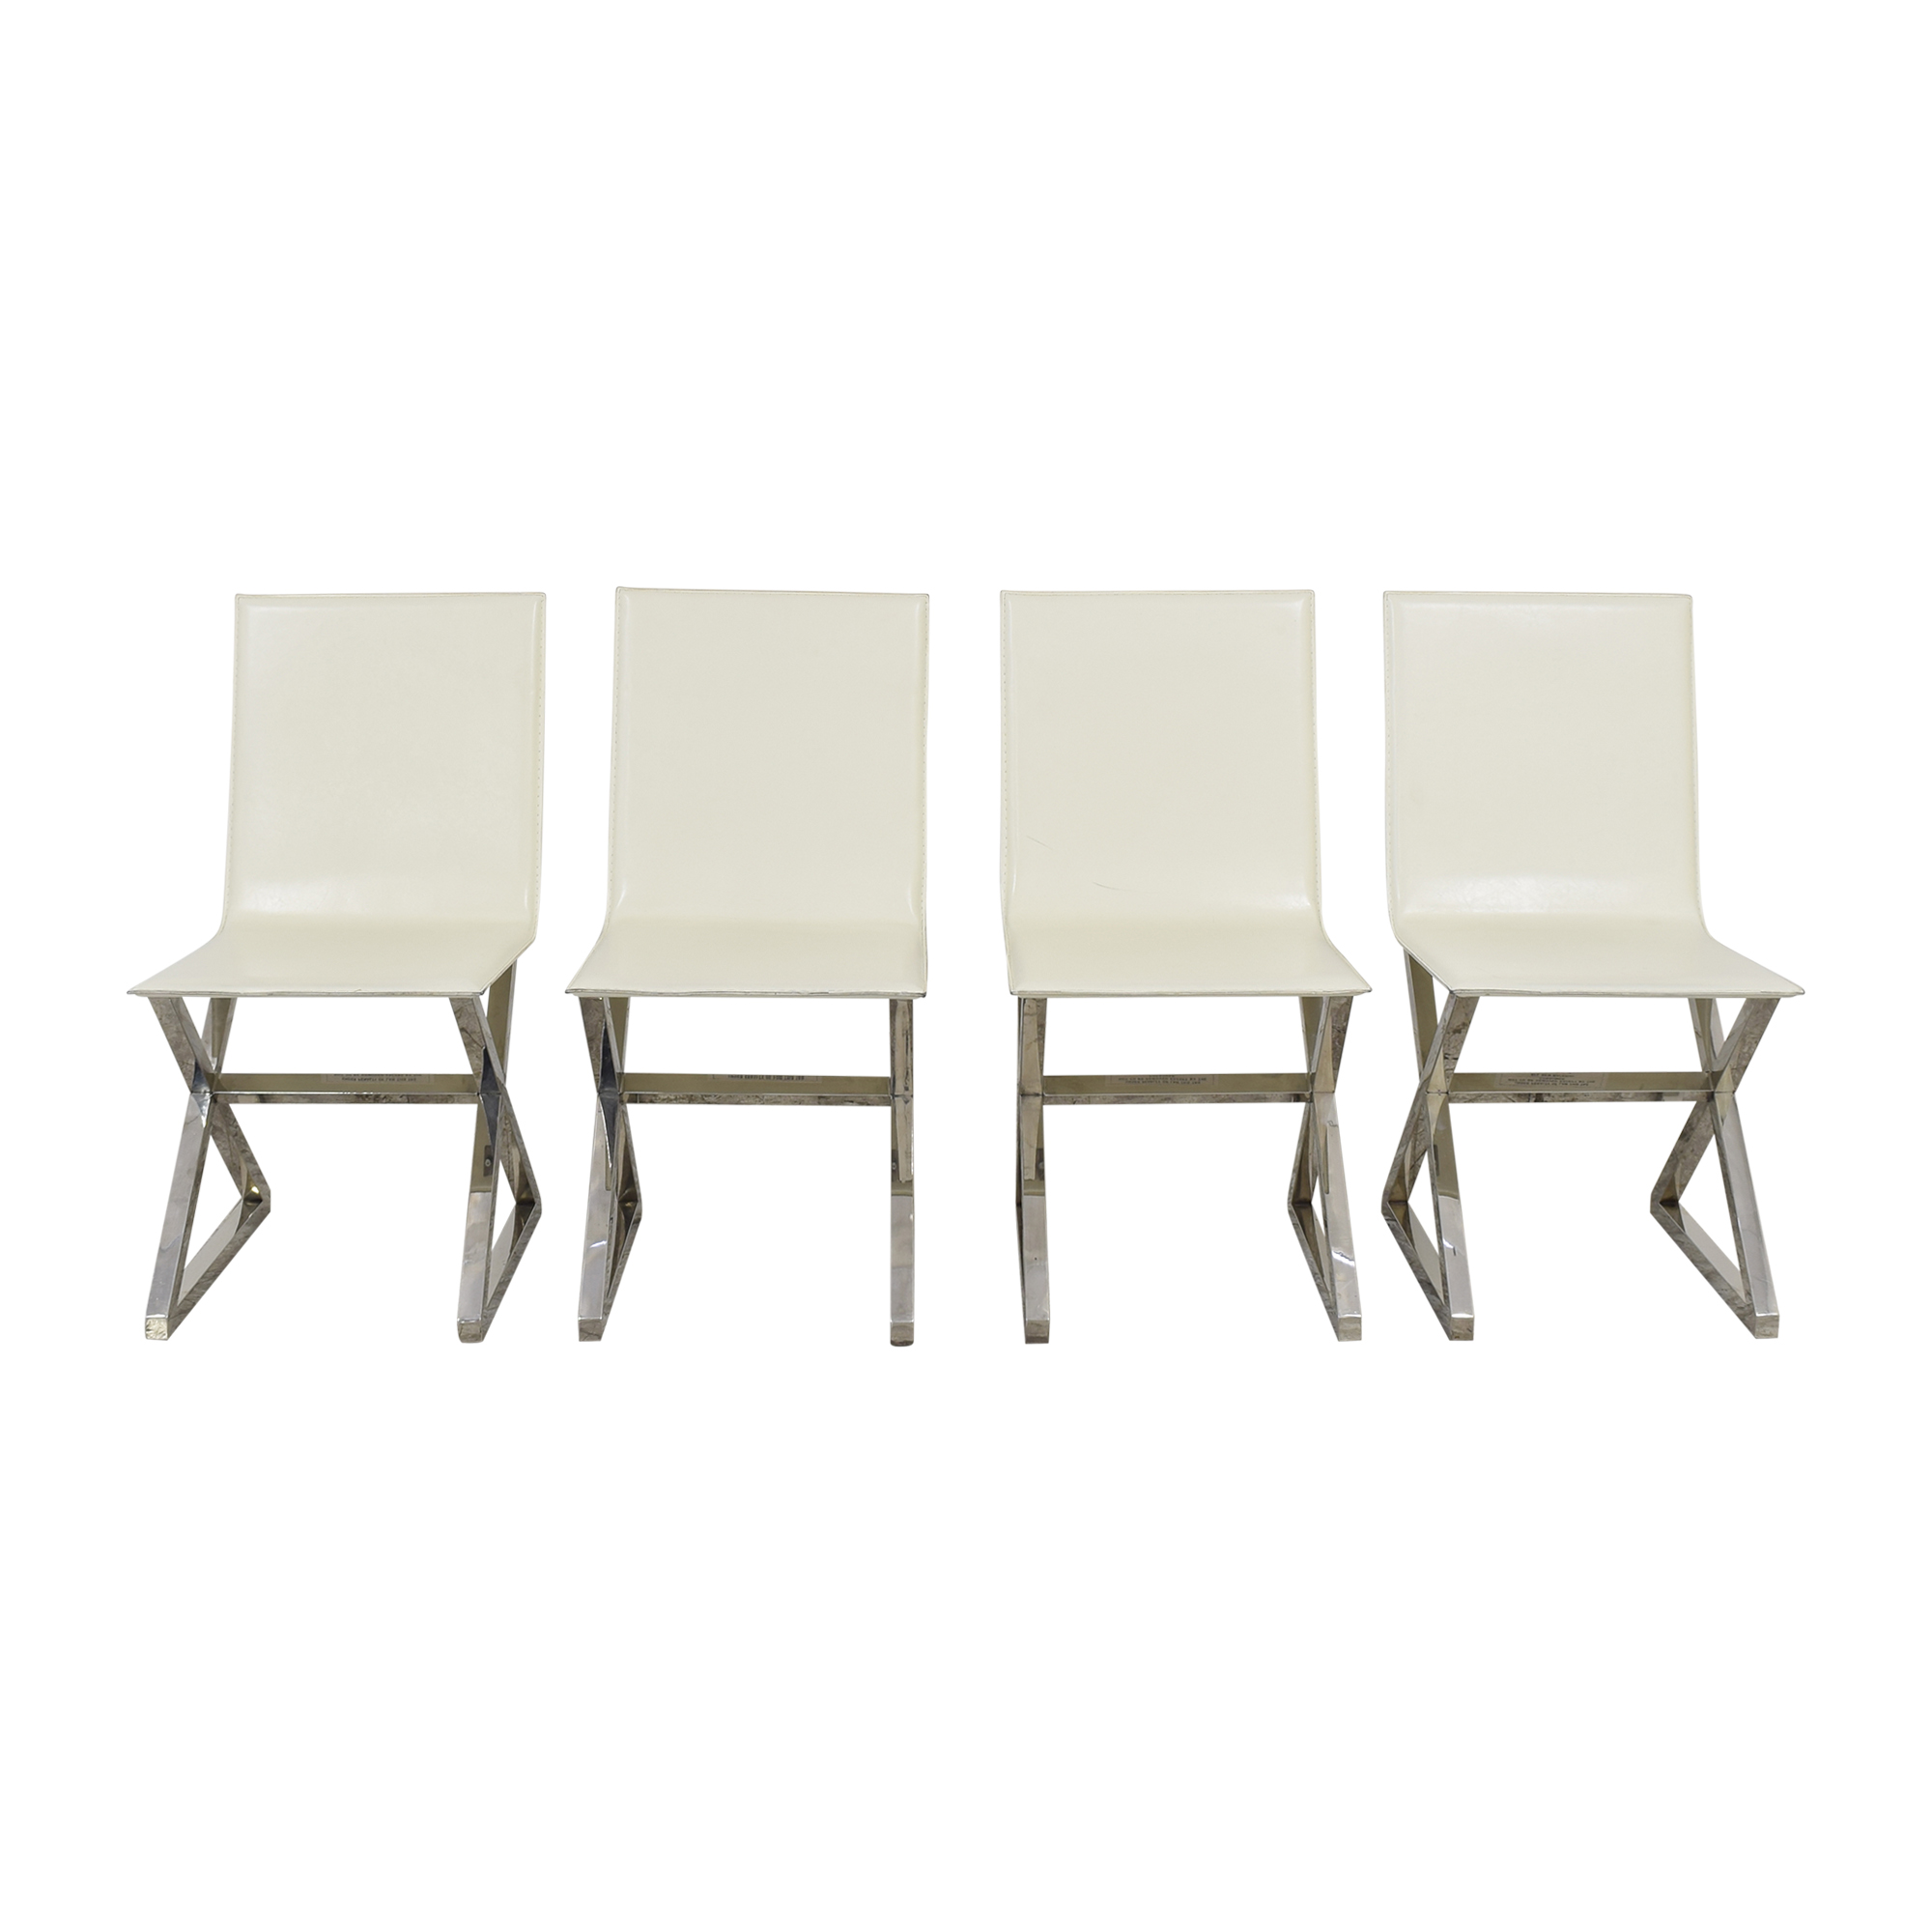 Z Gallerie Z Gallerie Axis Dining Chairs used